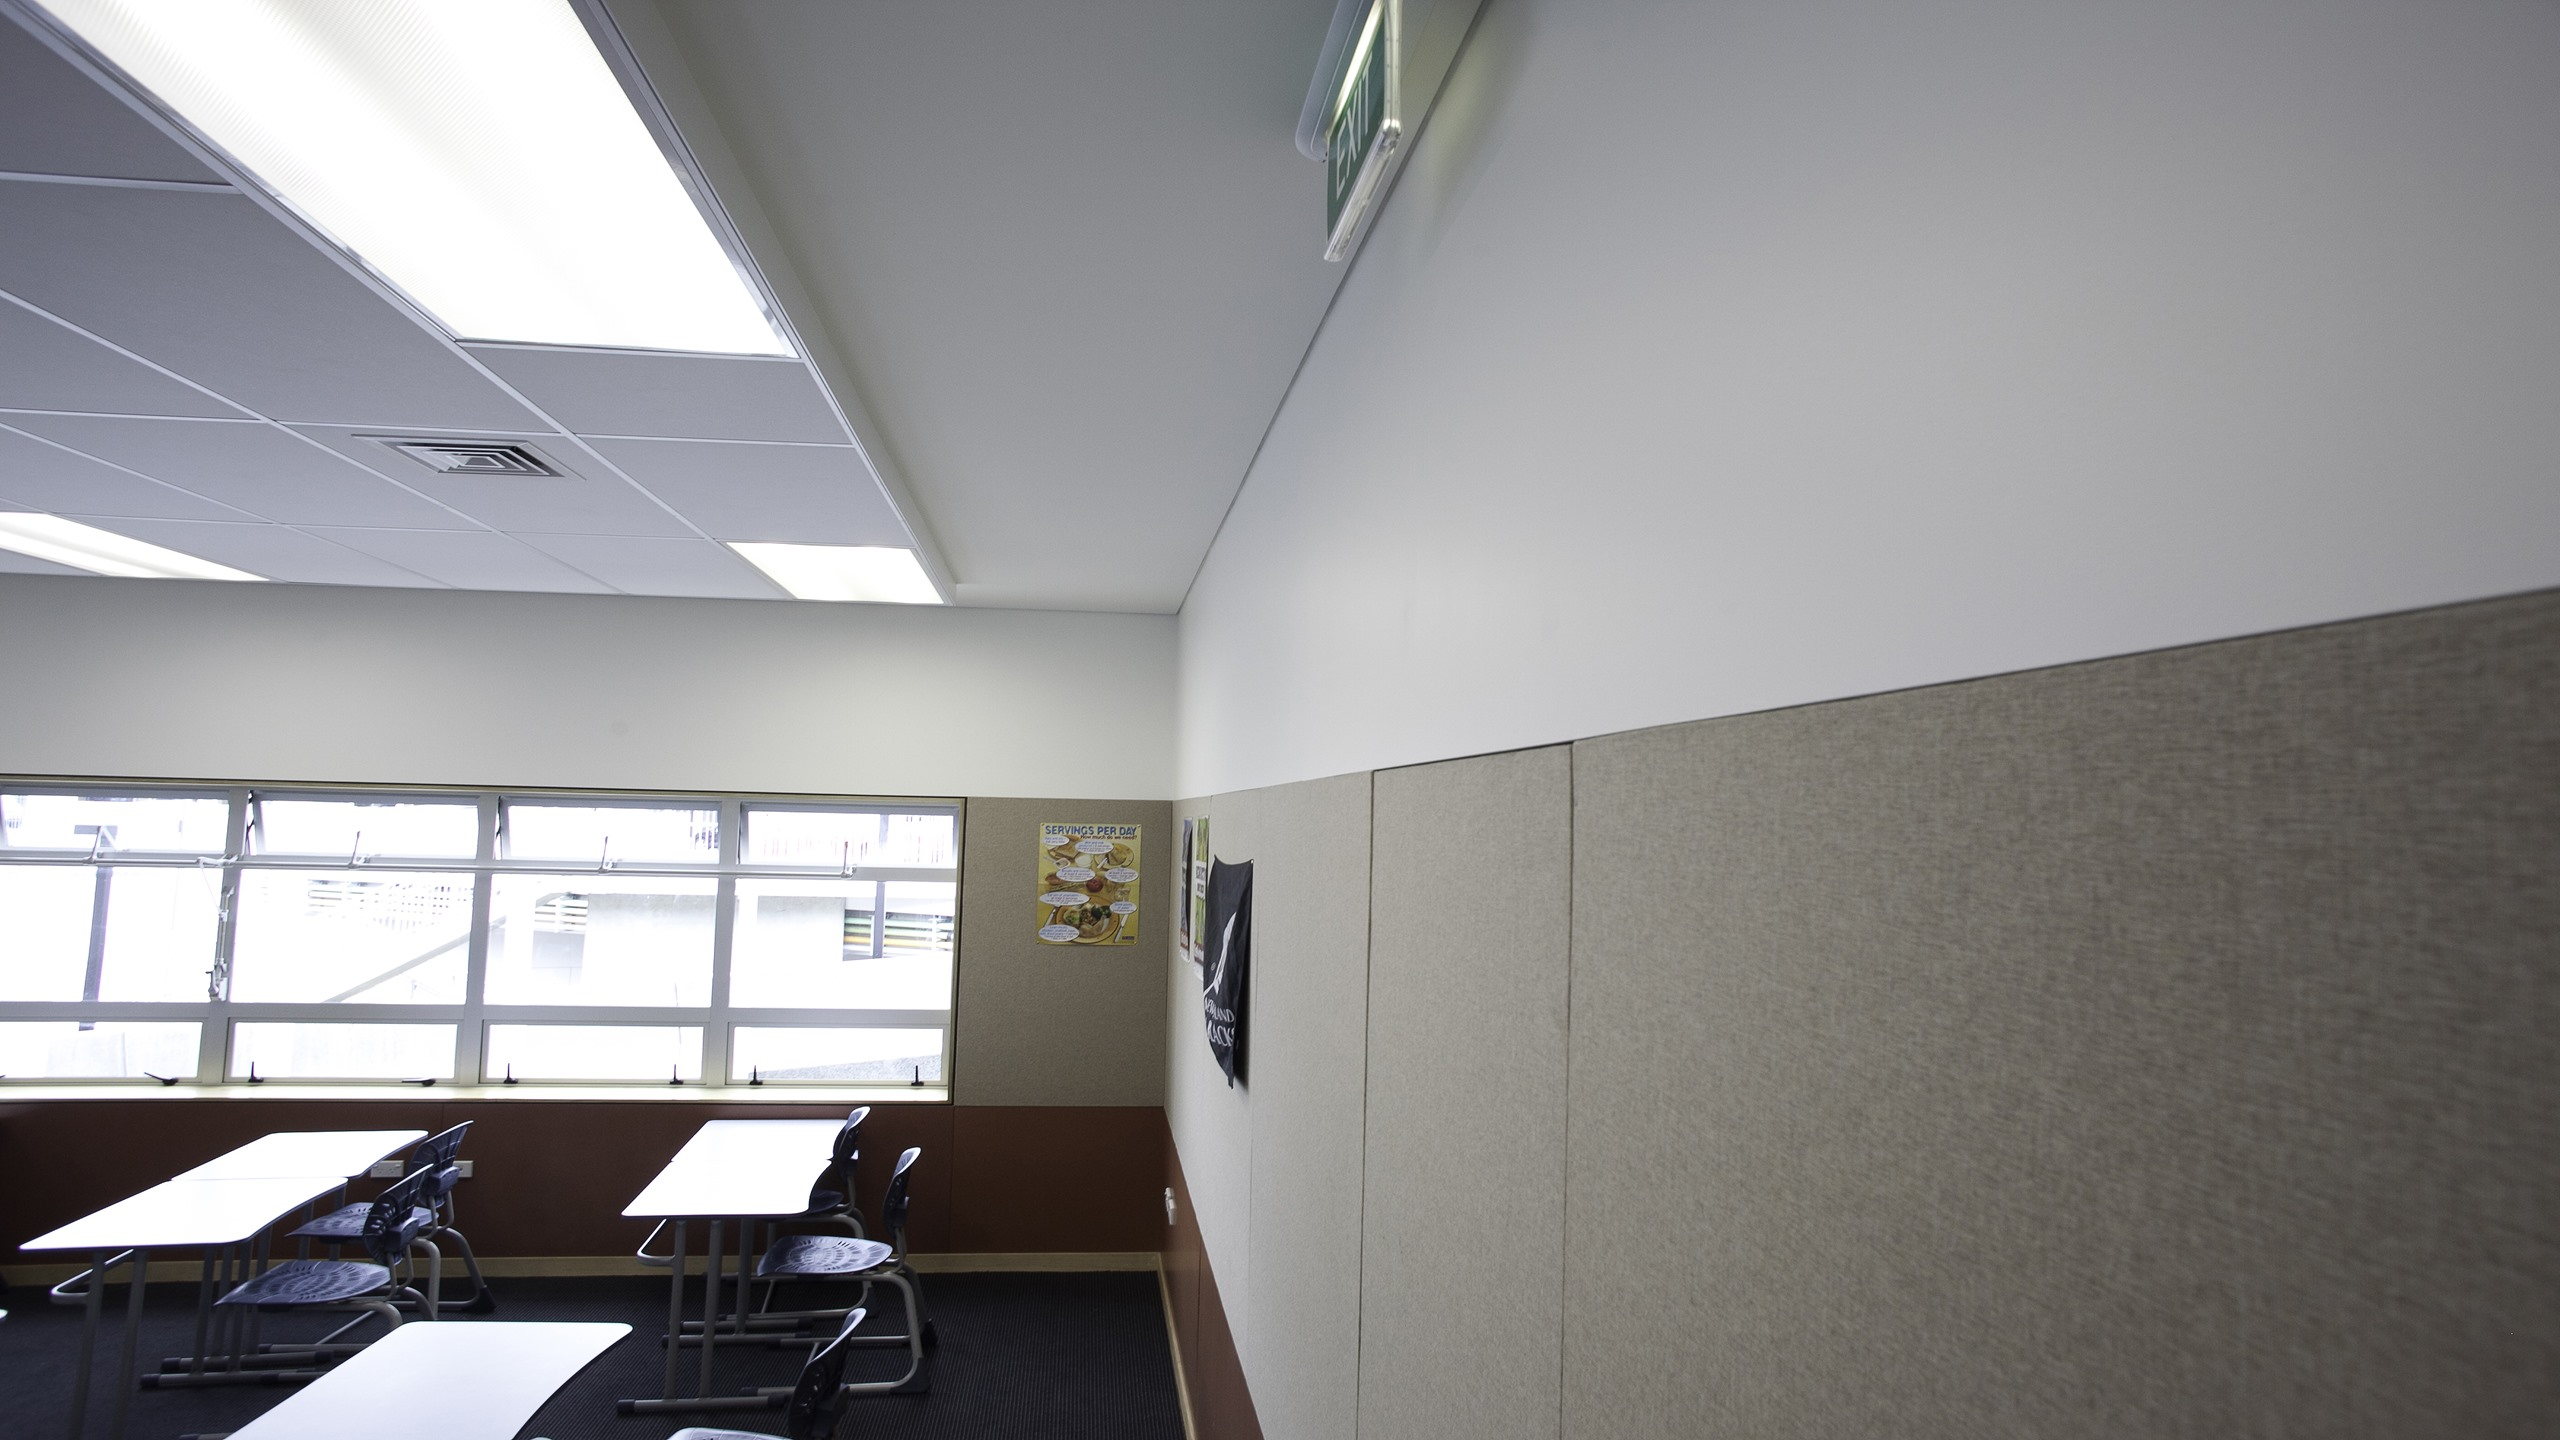 St Peters School - Quicklock stretched fabric system